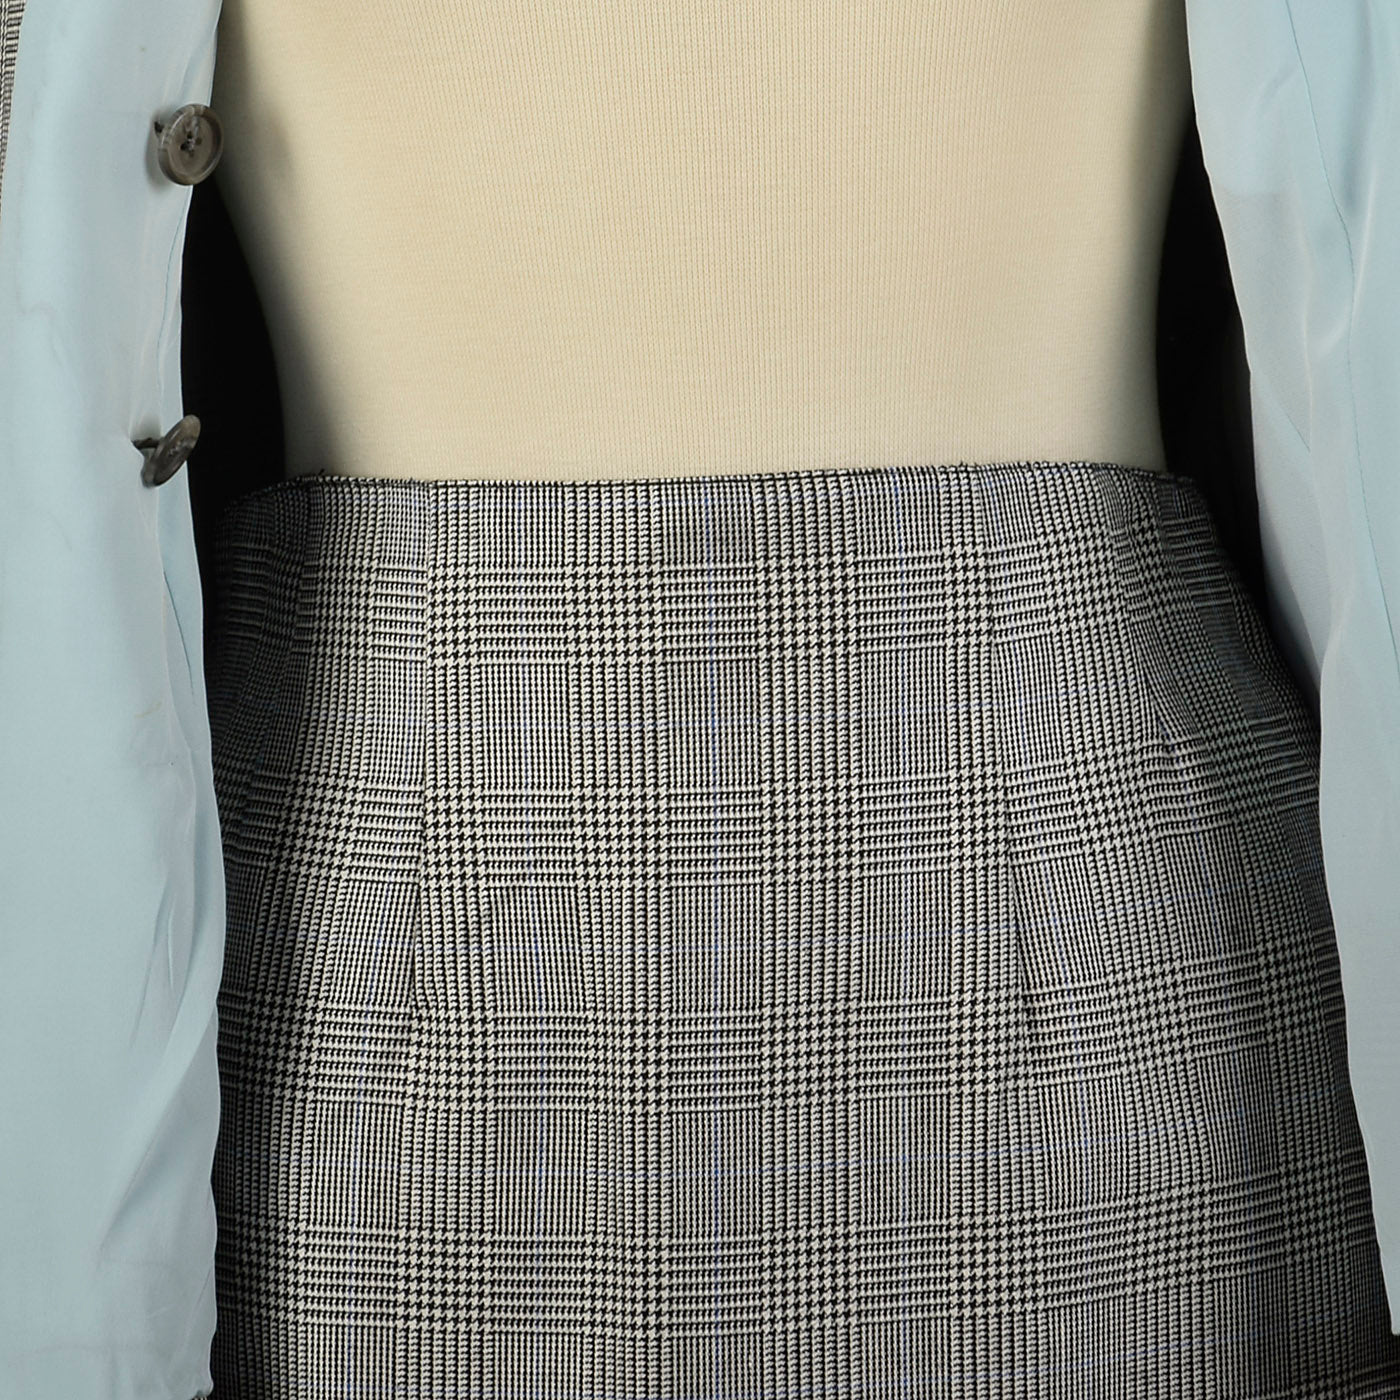 1990s Richard Tyler Black & White Plaid Skirt Suit